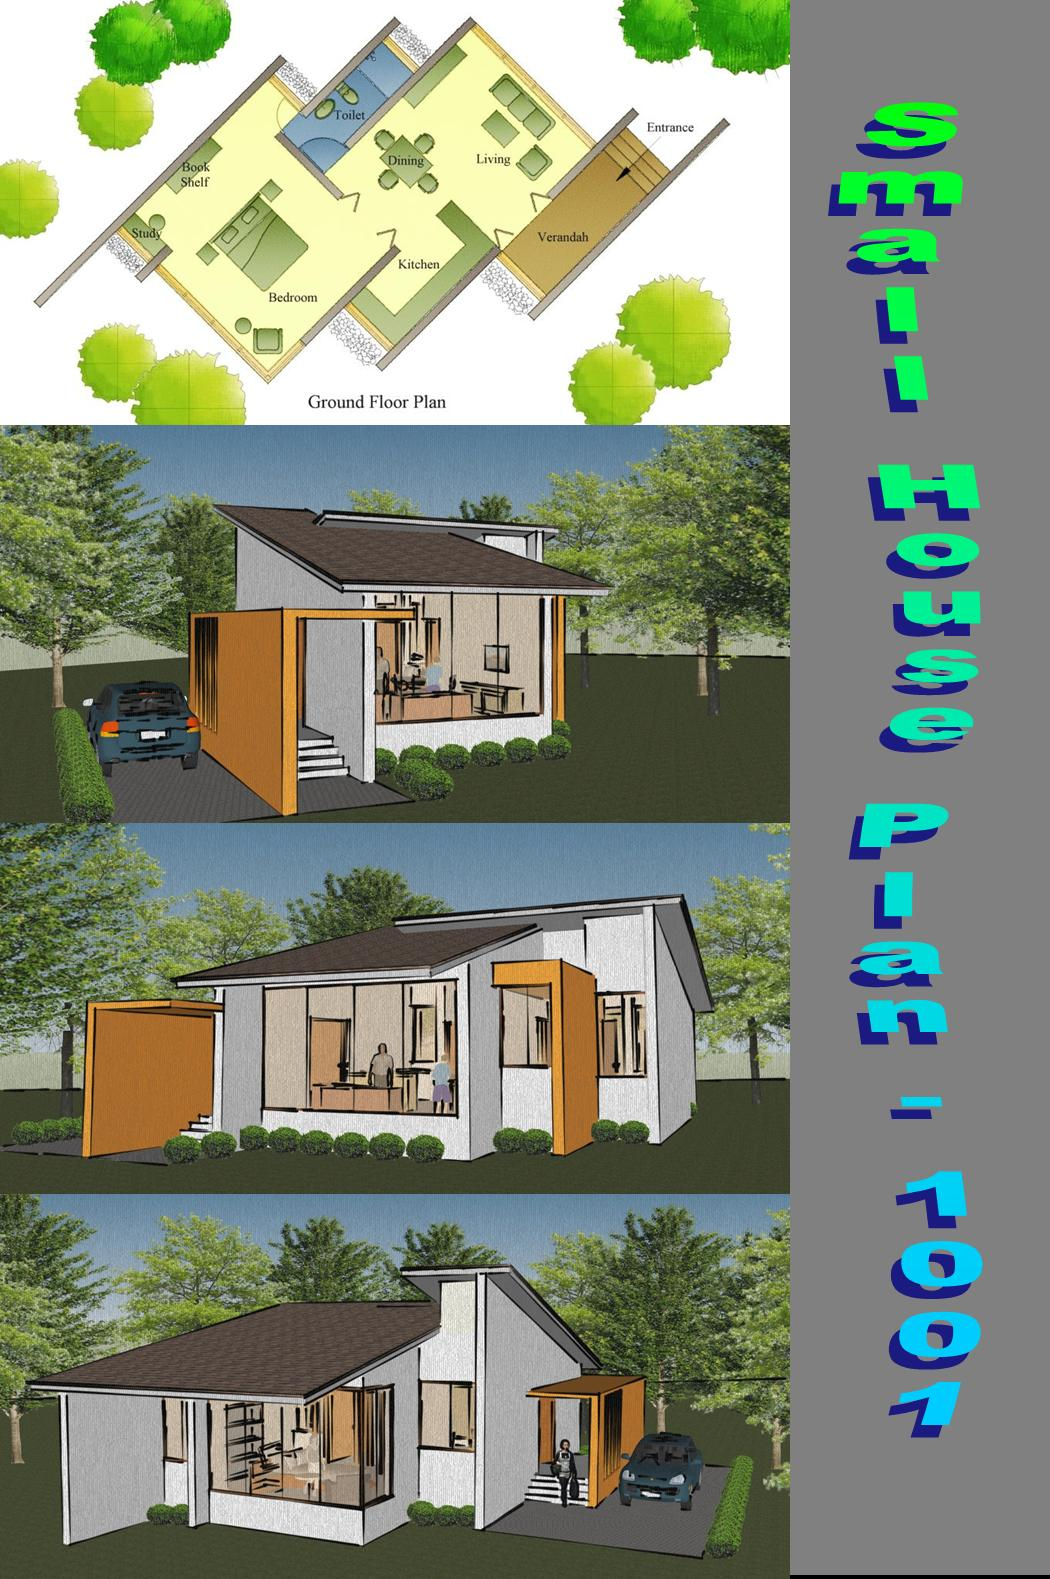 Home plans in india 5 best small home plans from - Home design and plans ...